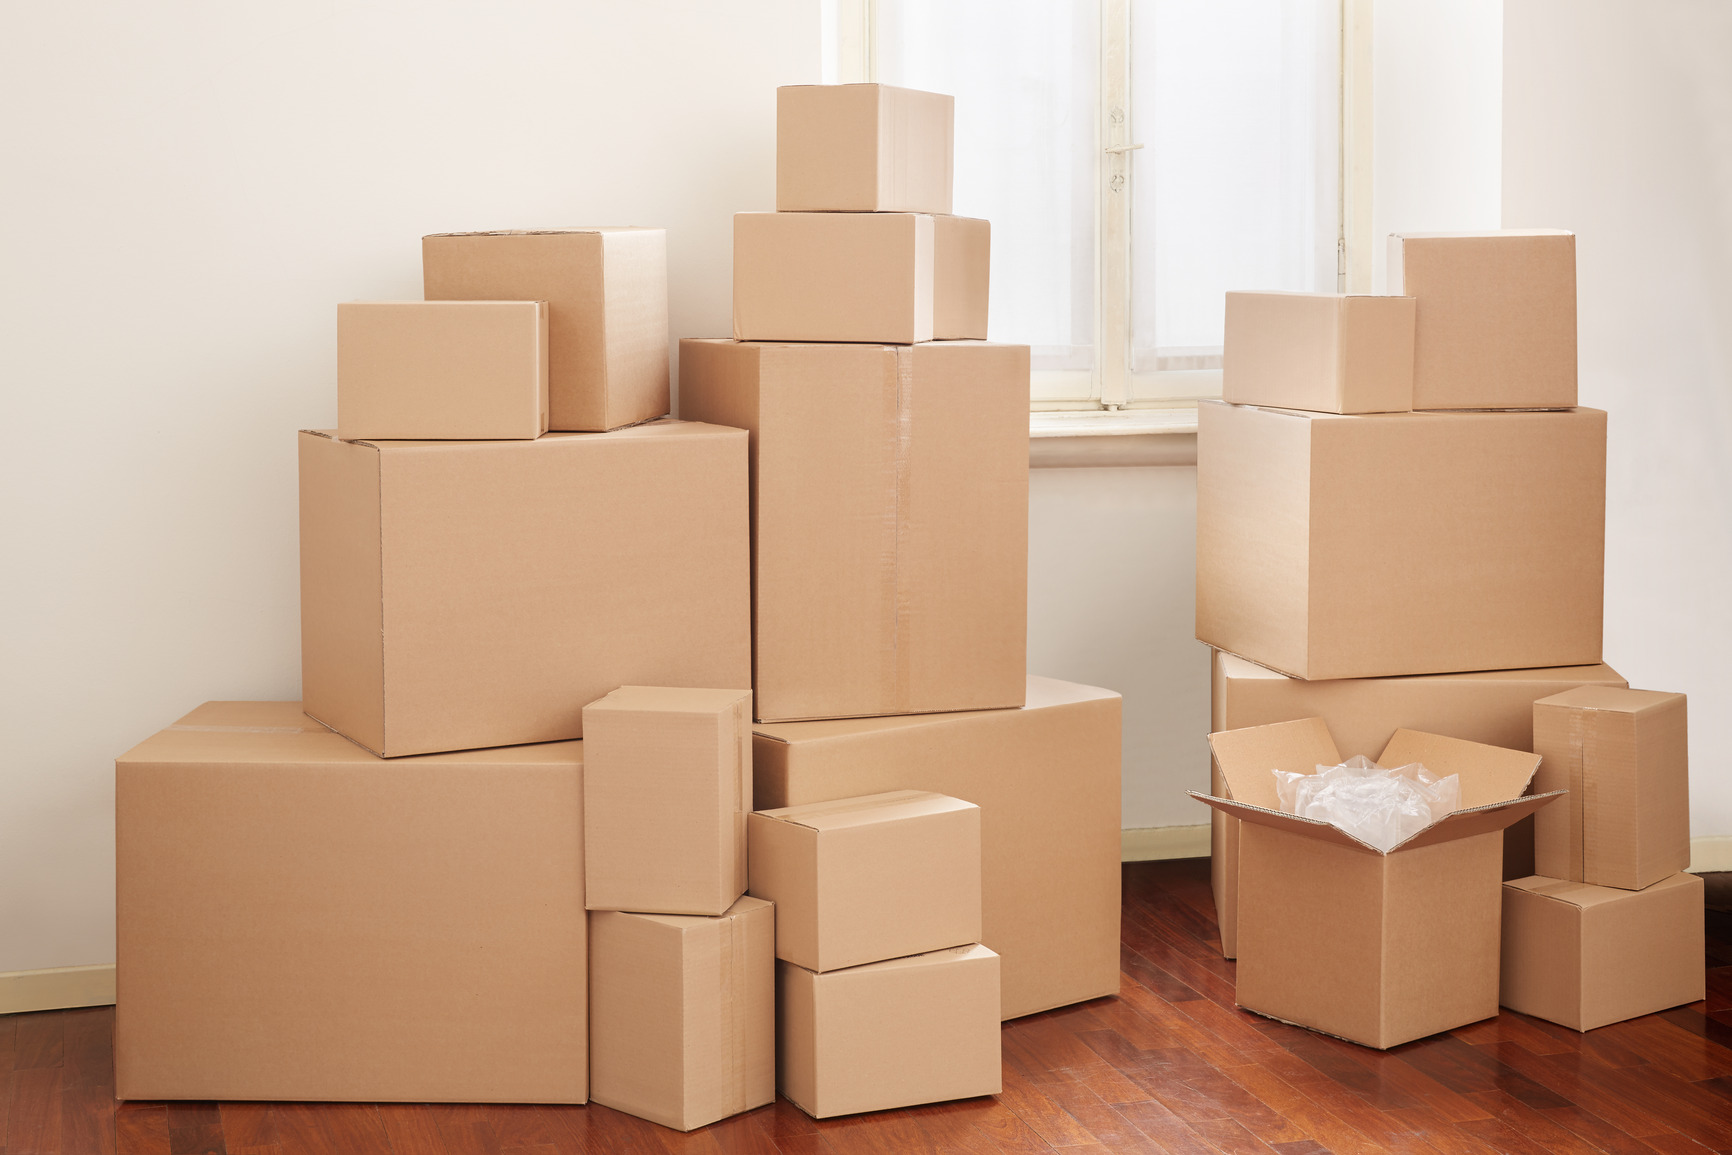 photodune-10015454-cardboard-boxes-in-apartment-moving-day-m